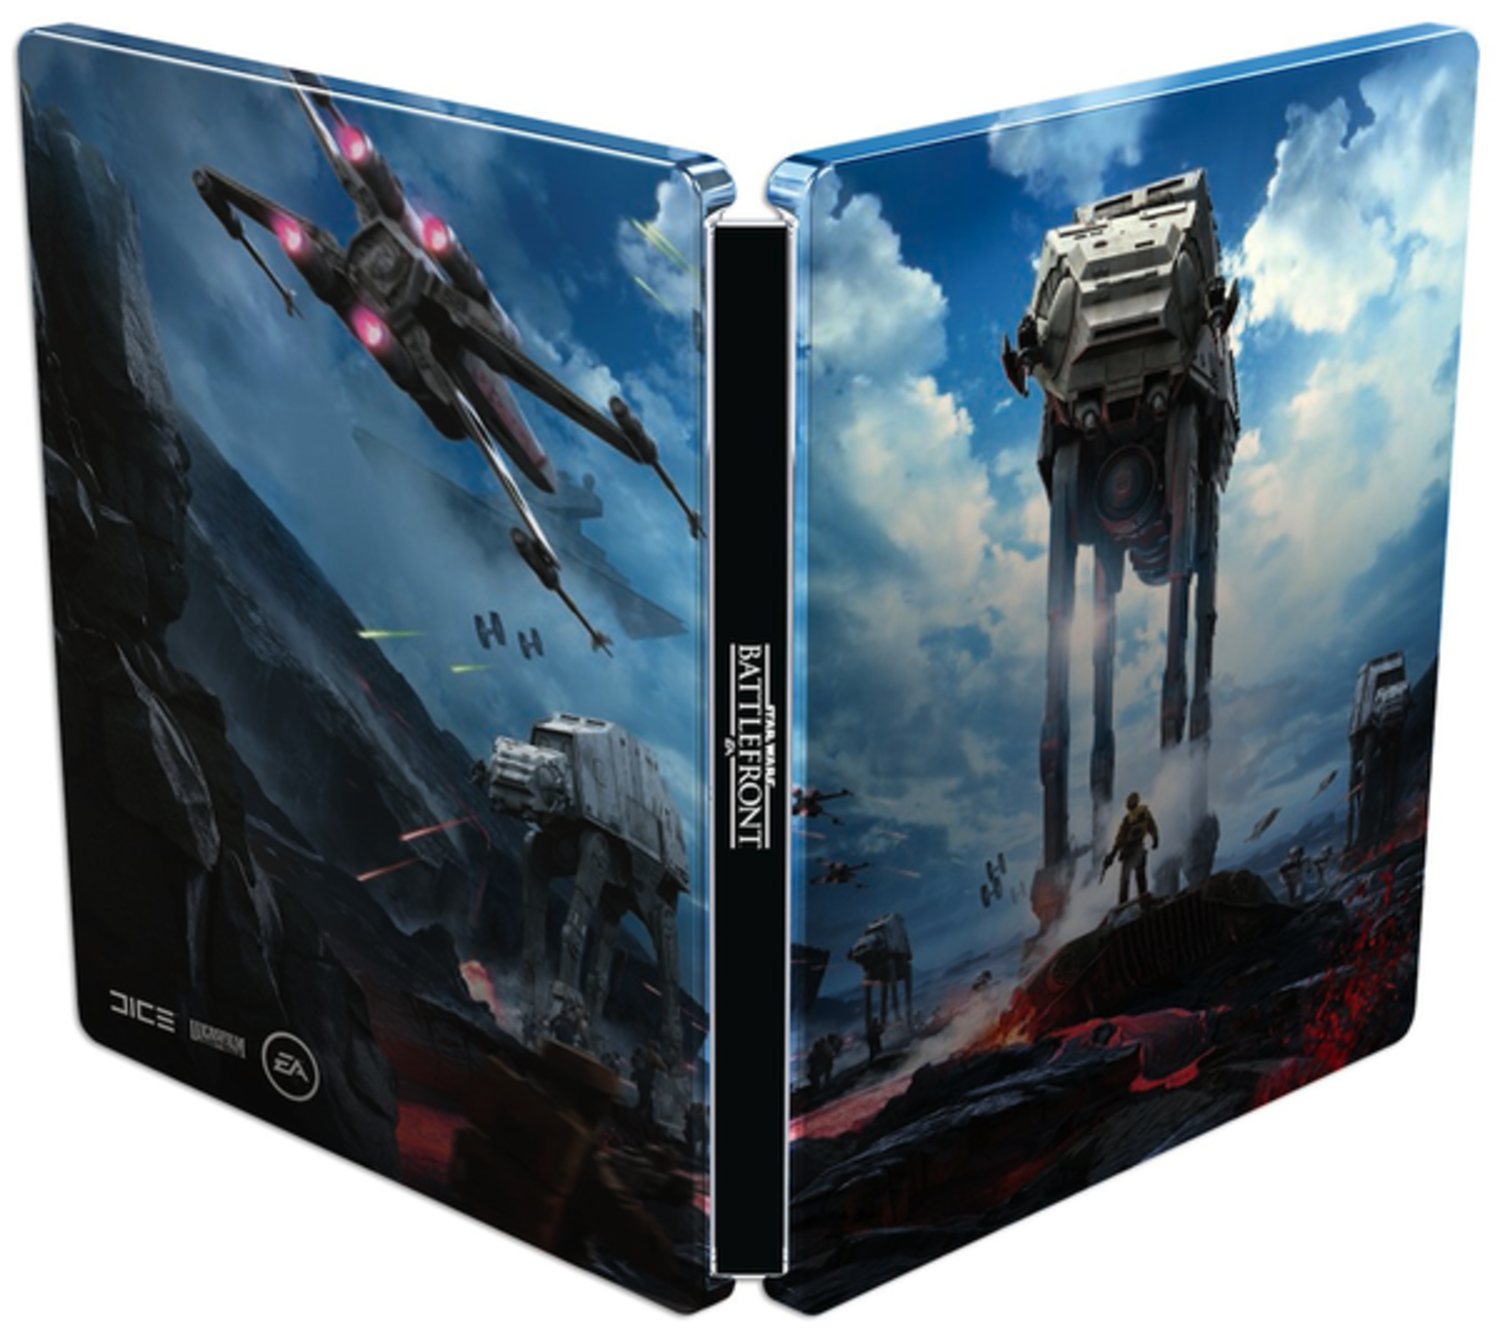 Star Wars Steelbook.png